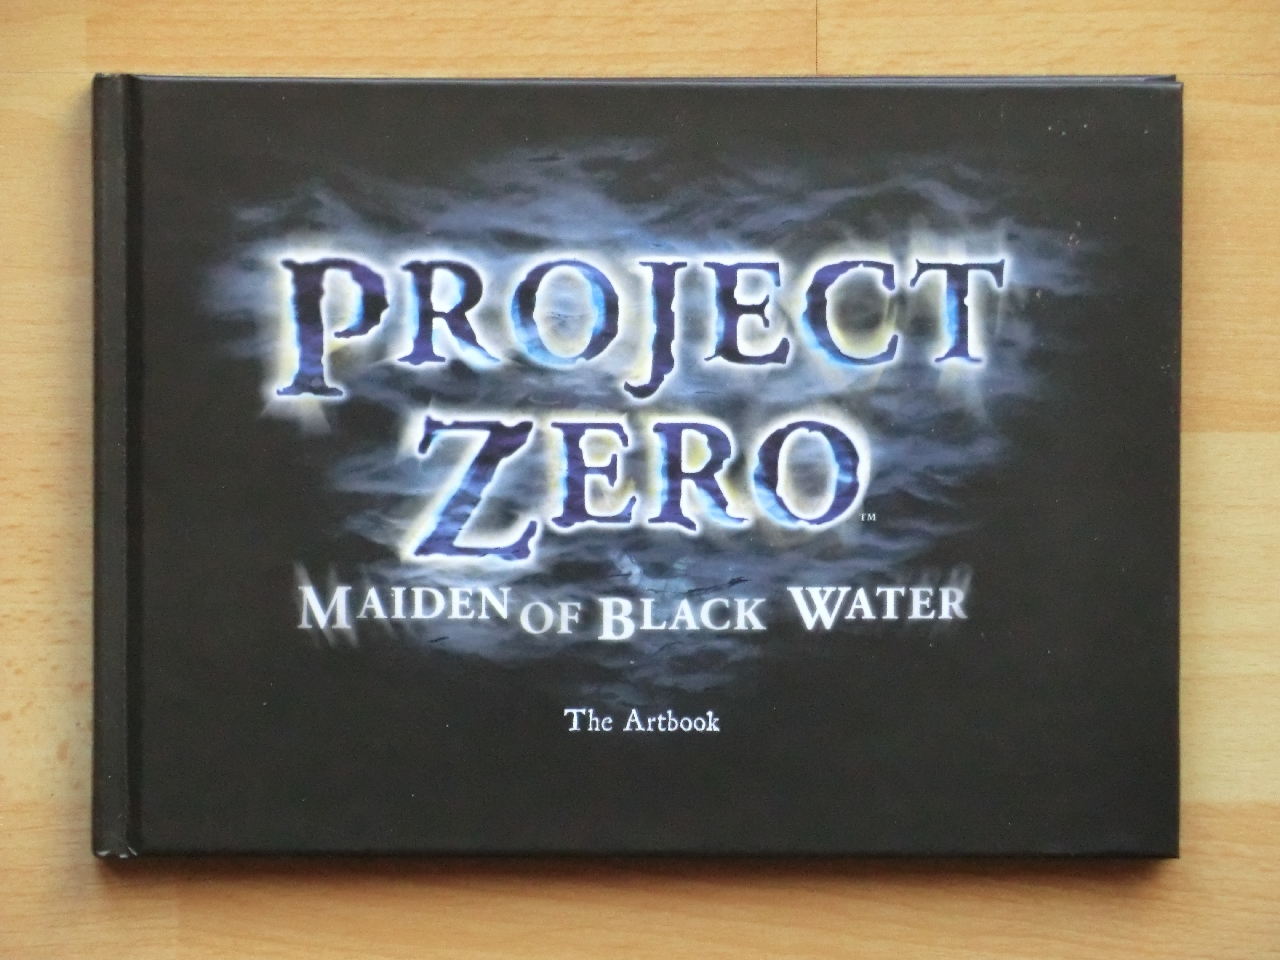 Project Zero Maiden of Black Water Wii U Survival Horror Fatal Frame Limited Edition Artbook